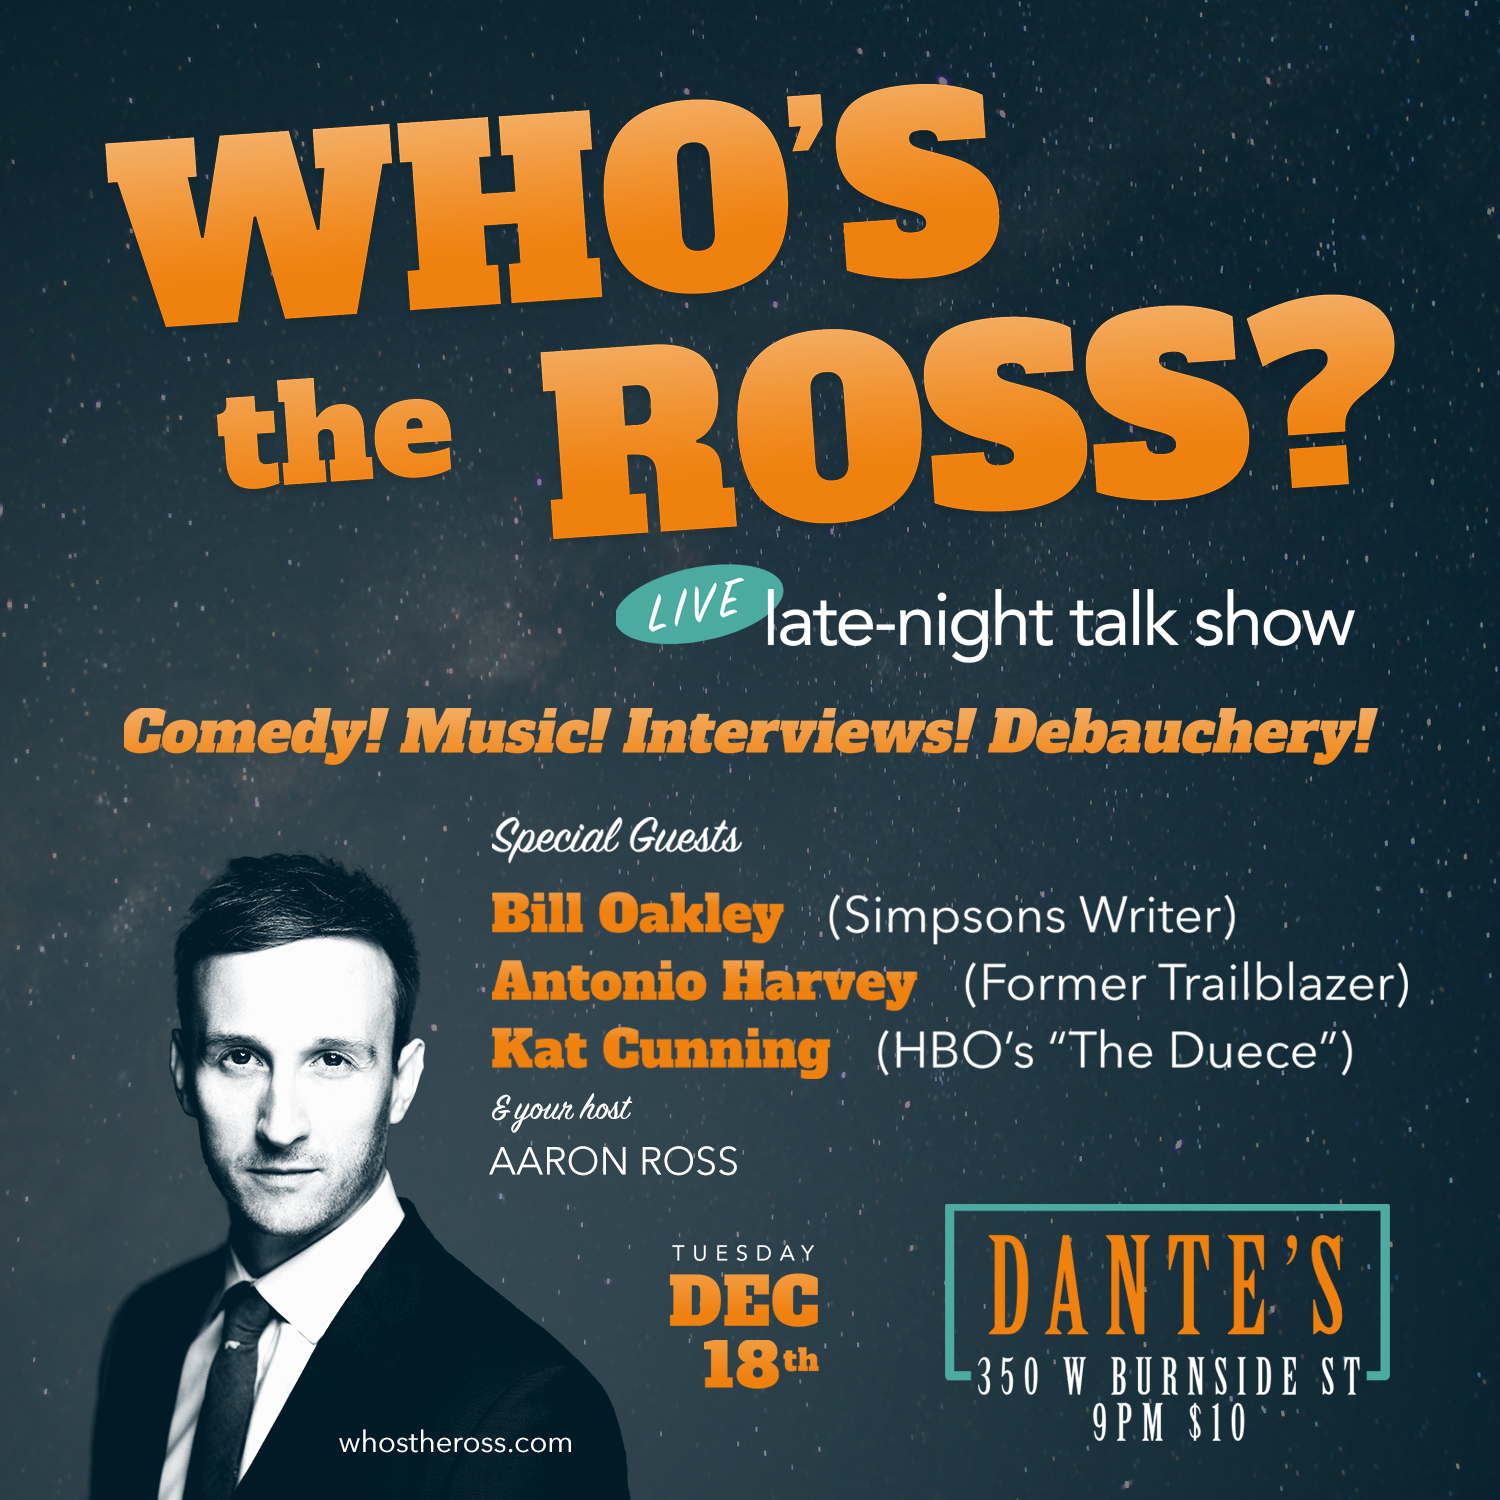 Who's the Ross? Aaron Ross Portland PDX Comedy Talk Show Funny Comedian Humor live entertainment